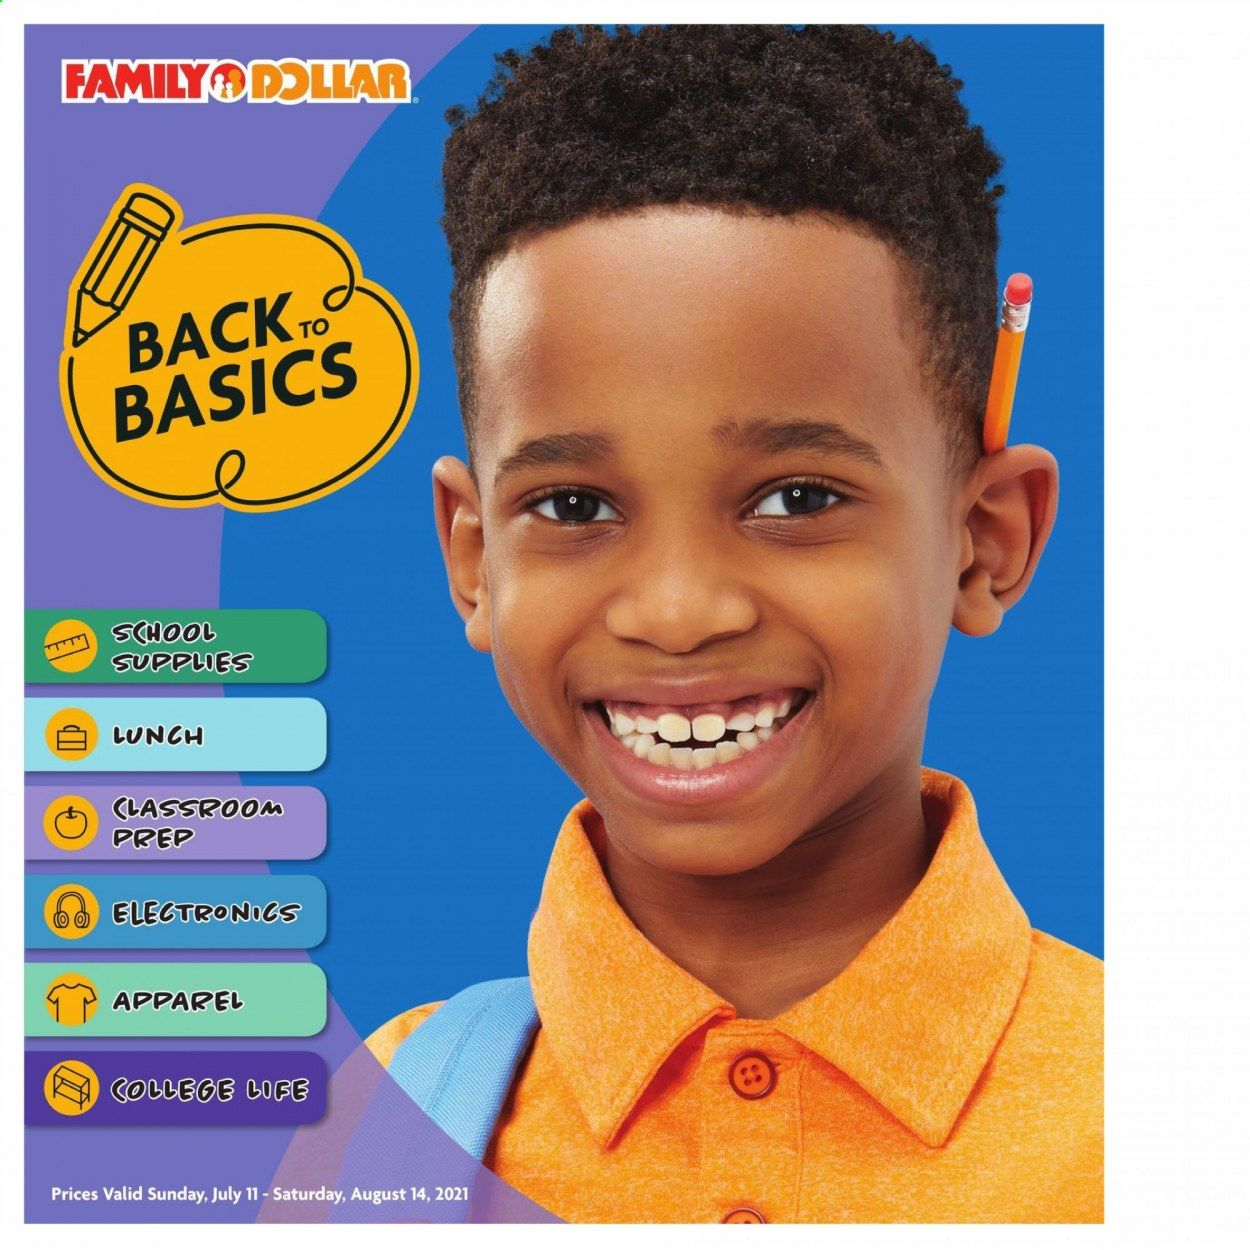 Family Dollar Back to School Ad from july 11 to august 14 2021 - Page 1